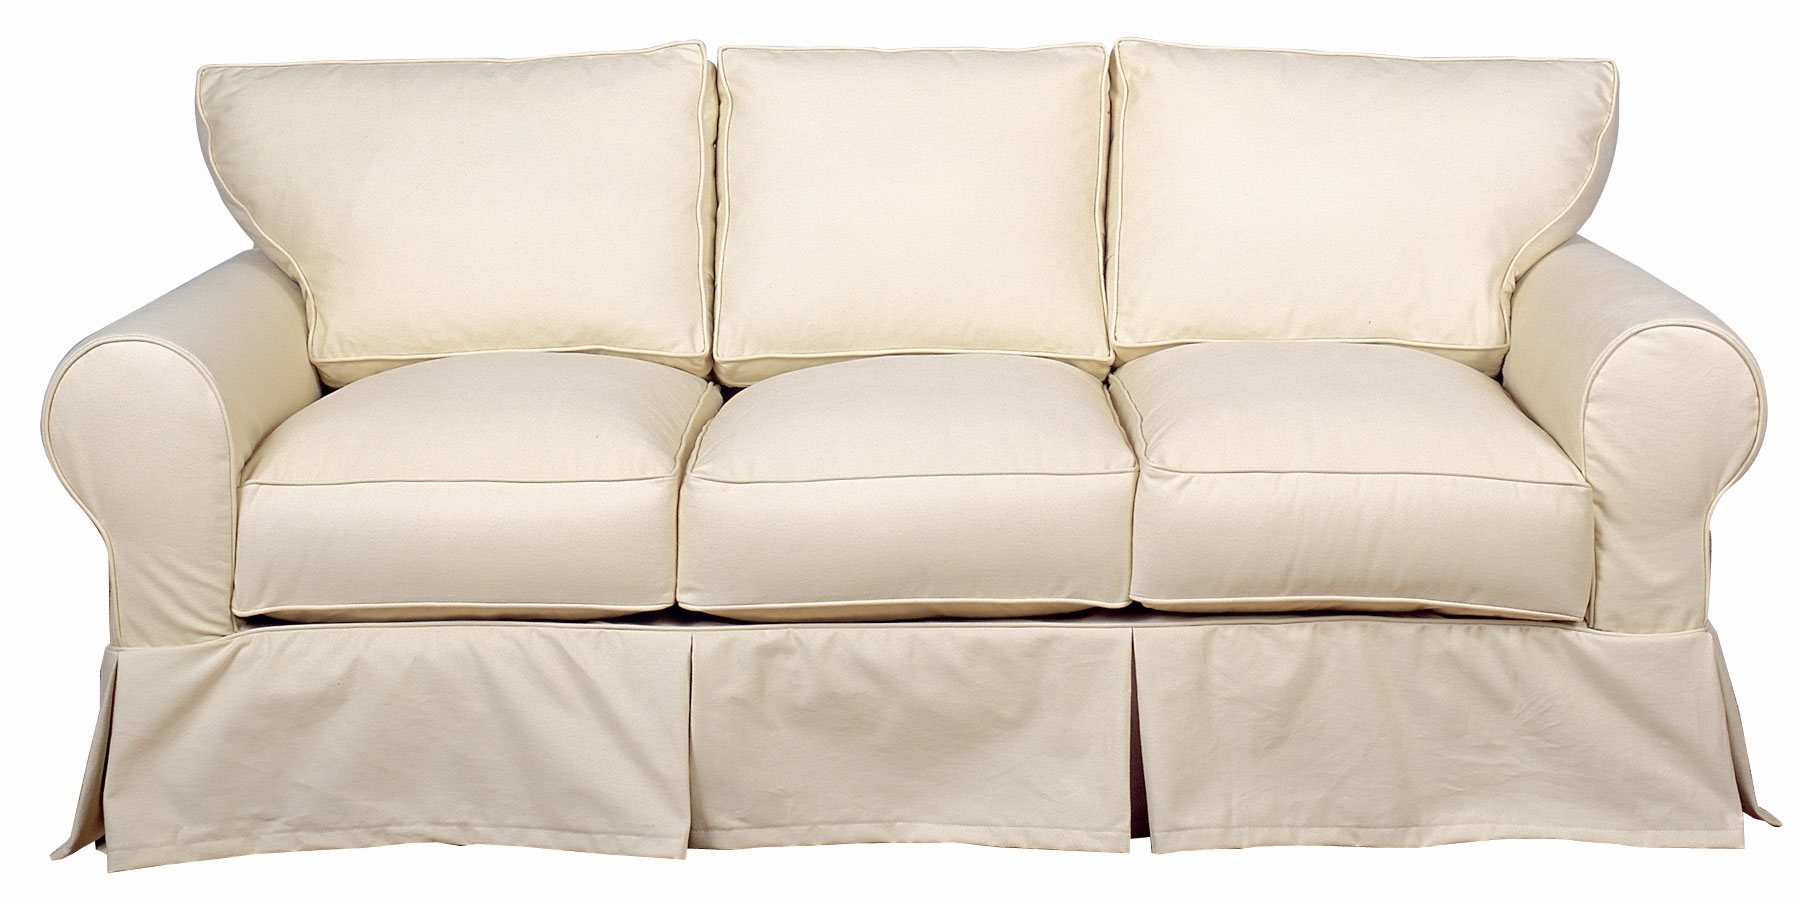 how to make a slipcover for sofa 4087 sectional with recliners leather earth two tone modern three cushion 3